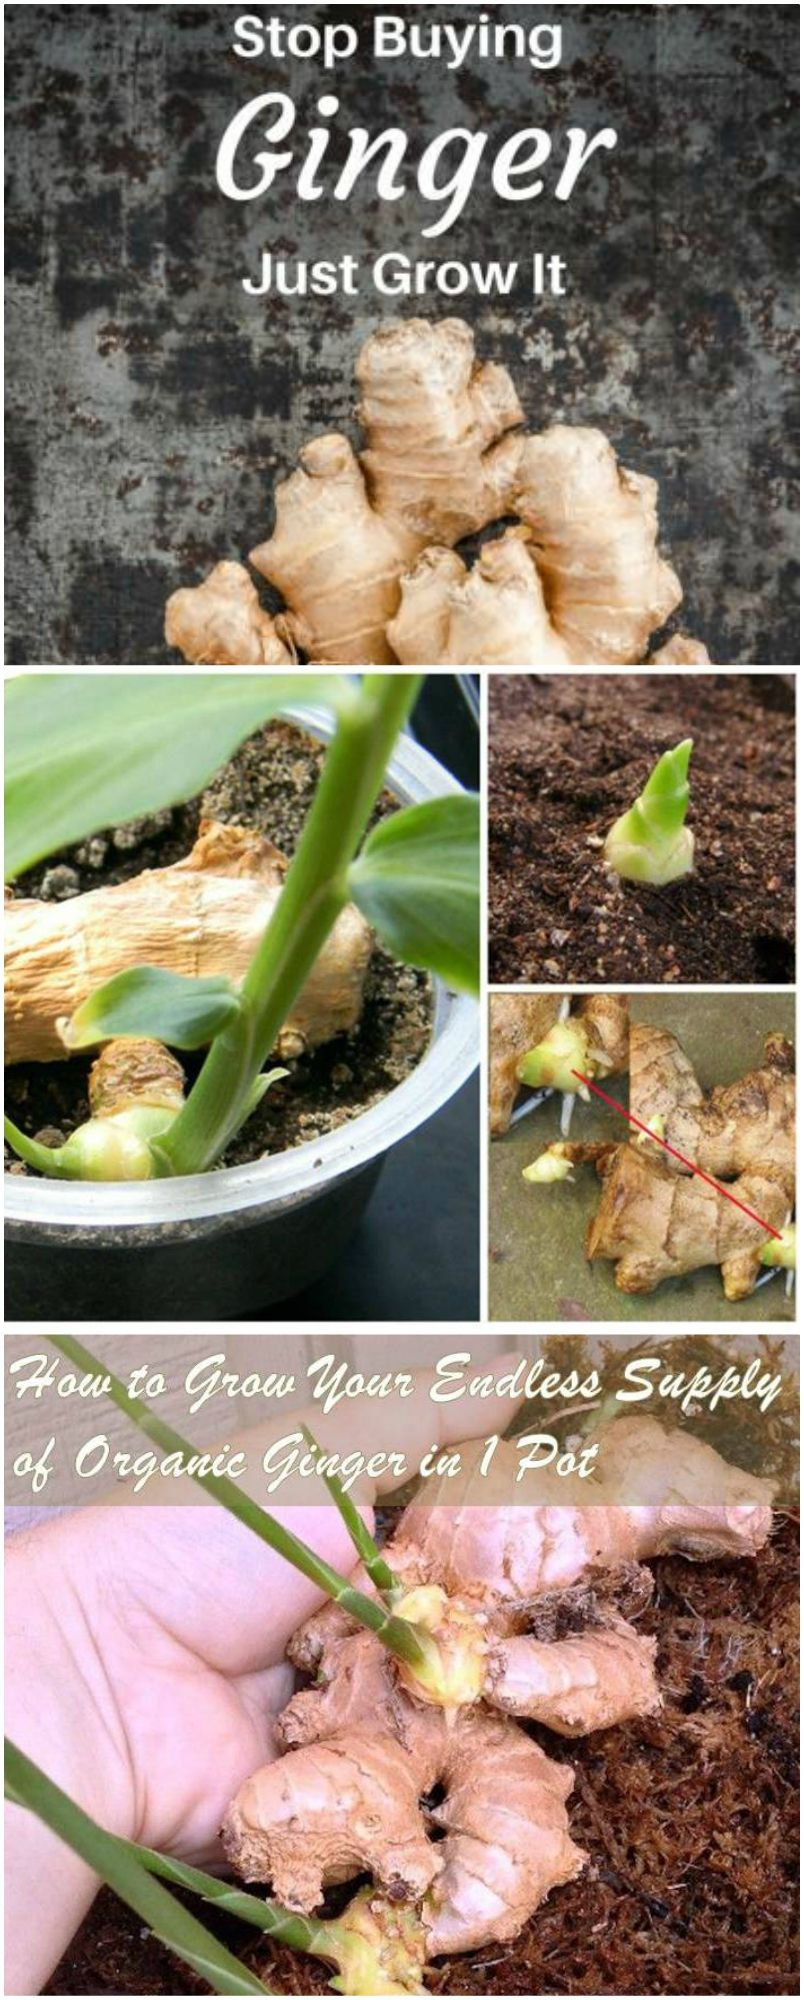 How To Grow Your Endless Supply Of Organic Ginger In 1 Pot Growing Organic Food Organic Gardening Tips Organic Vegetables